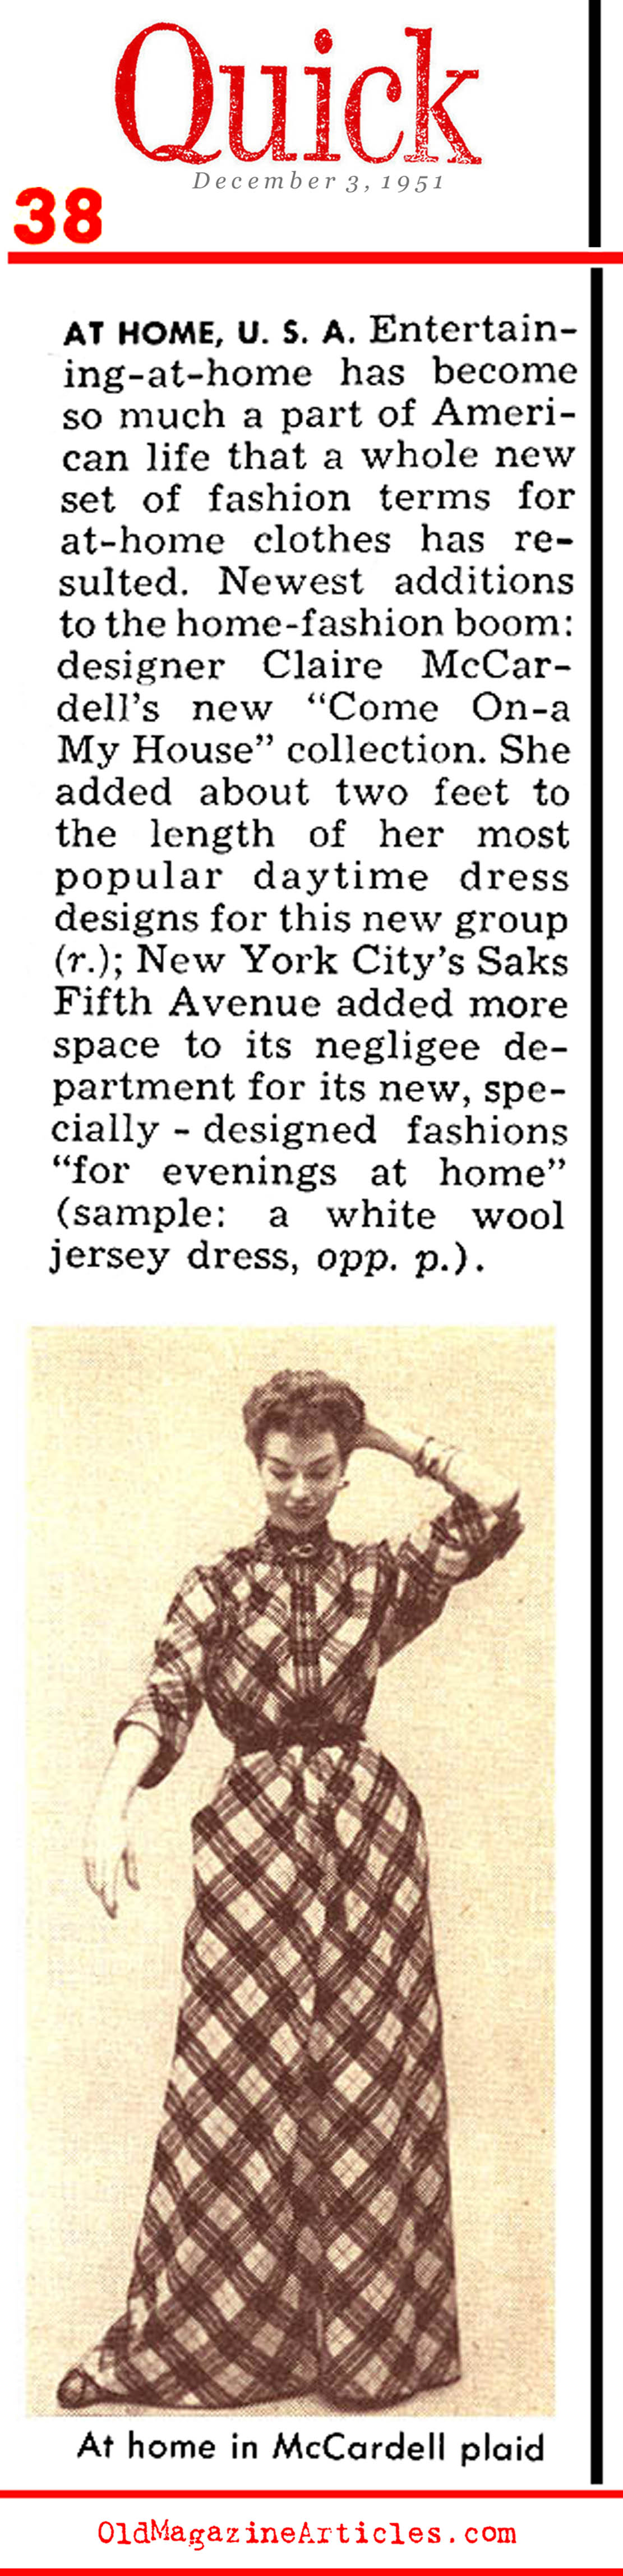 The Strong Economy and its Effect on Fashion (Quick Magazine, 1951)